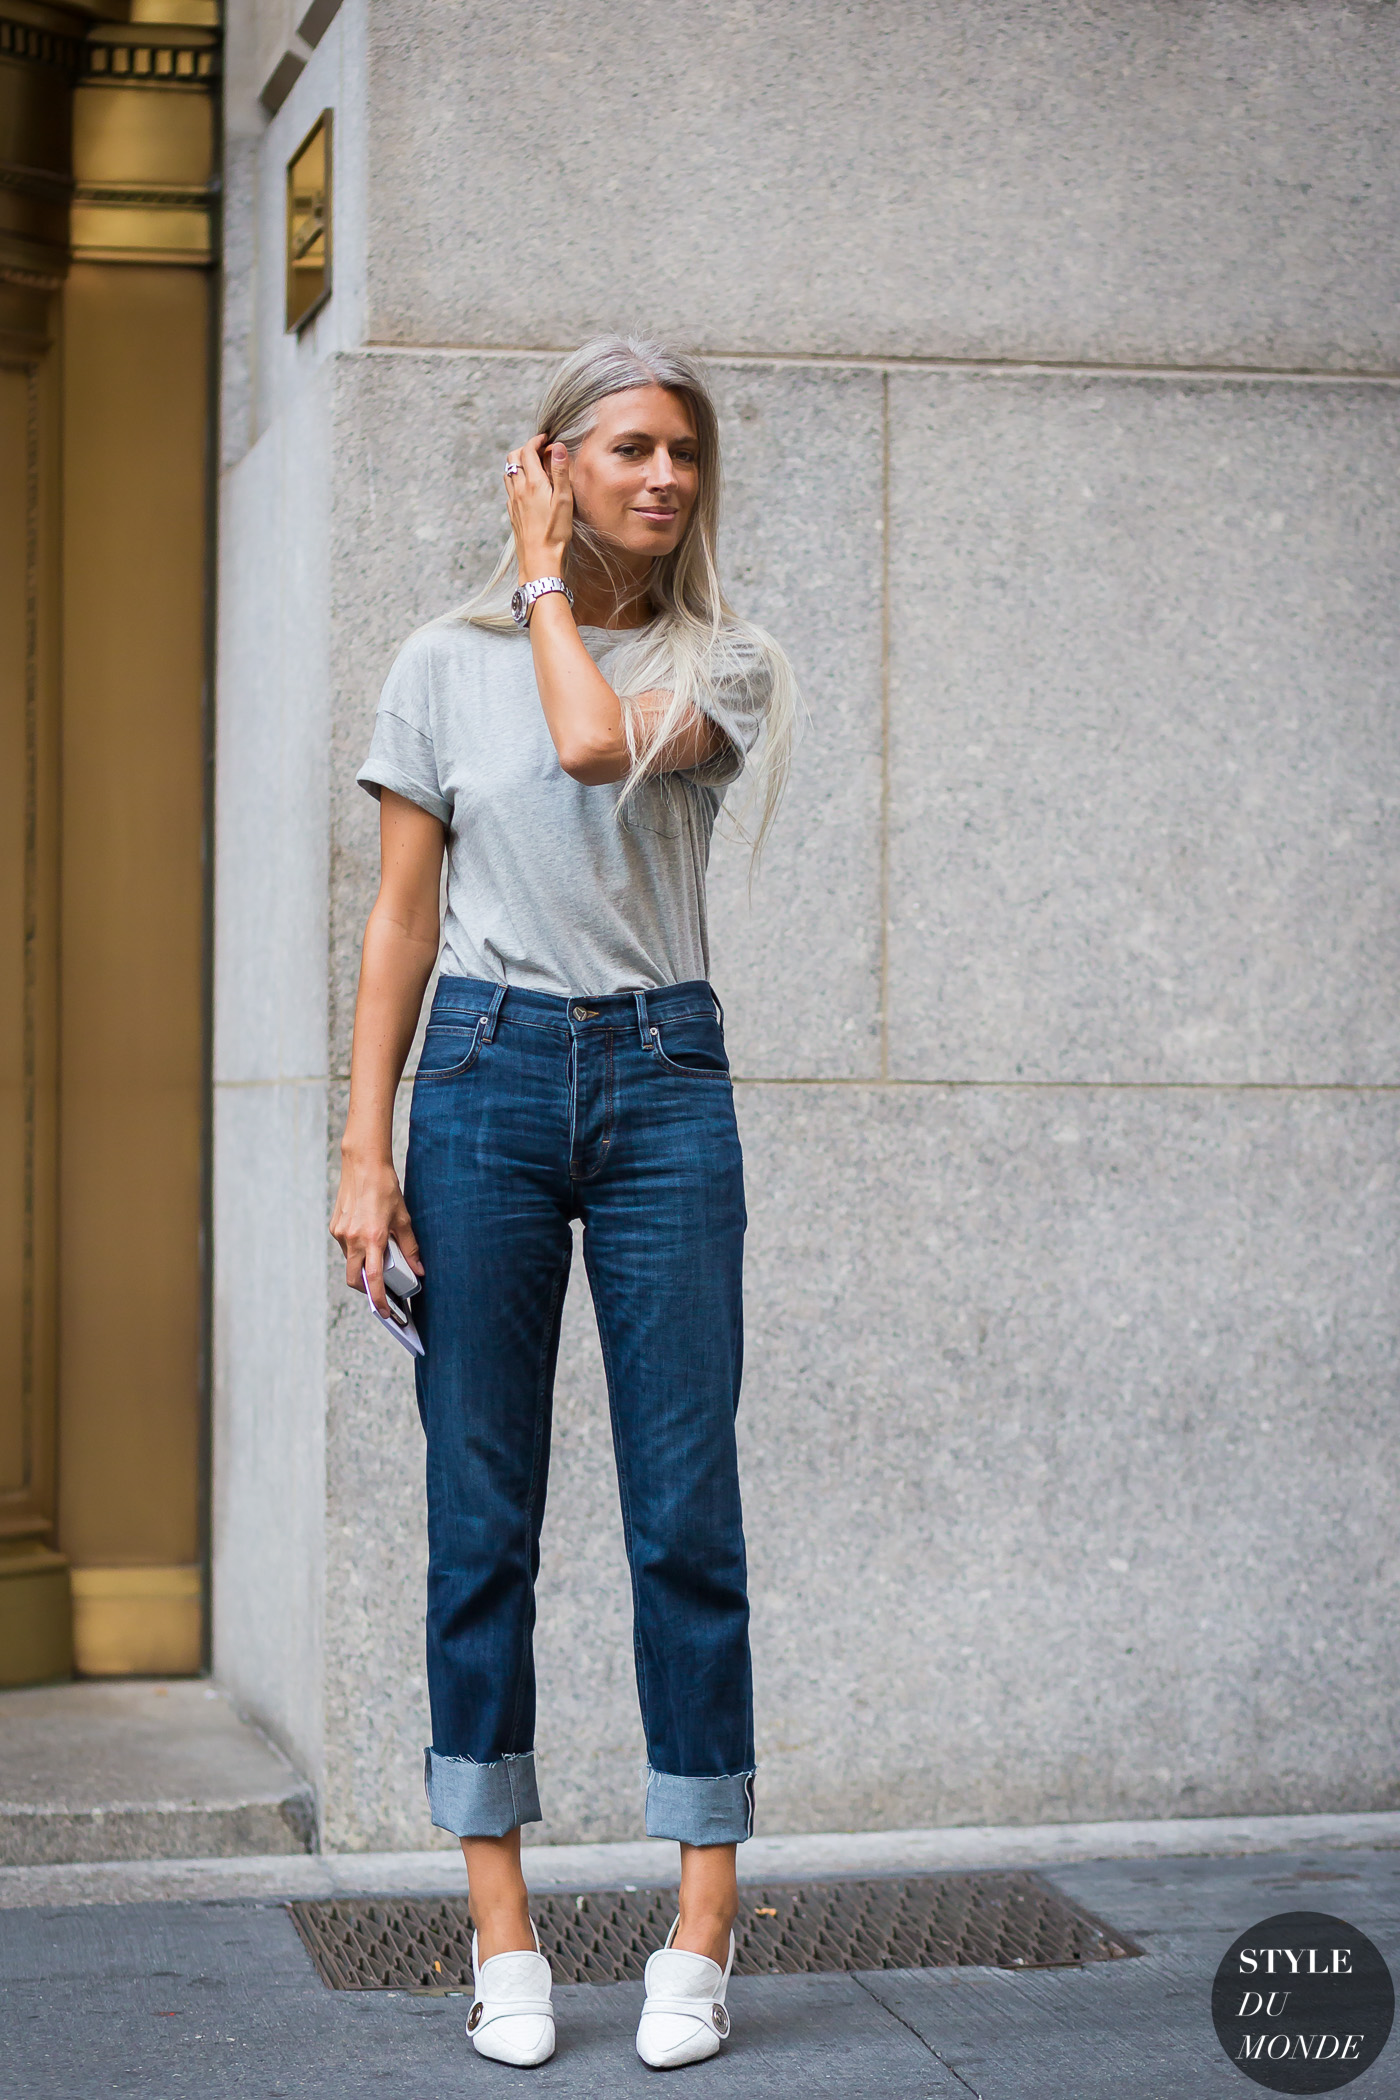 New york fashion week ss 2016 street style sarah harris style du monde street style street Fashion style october 2015